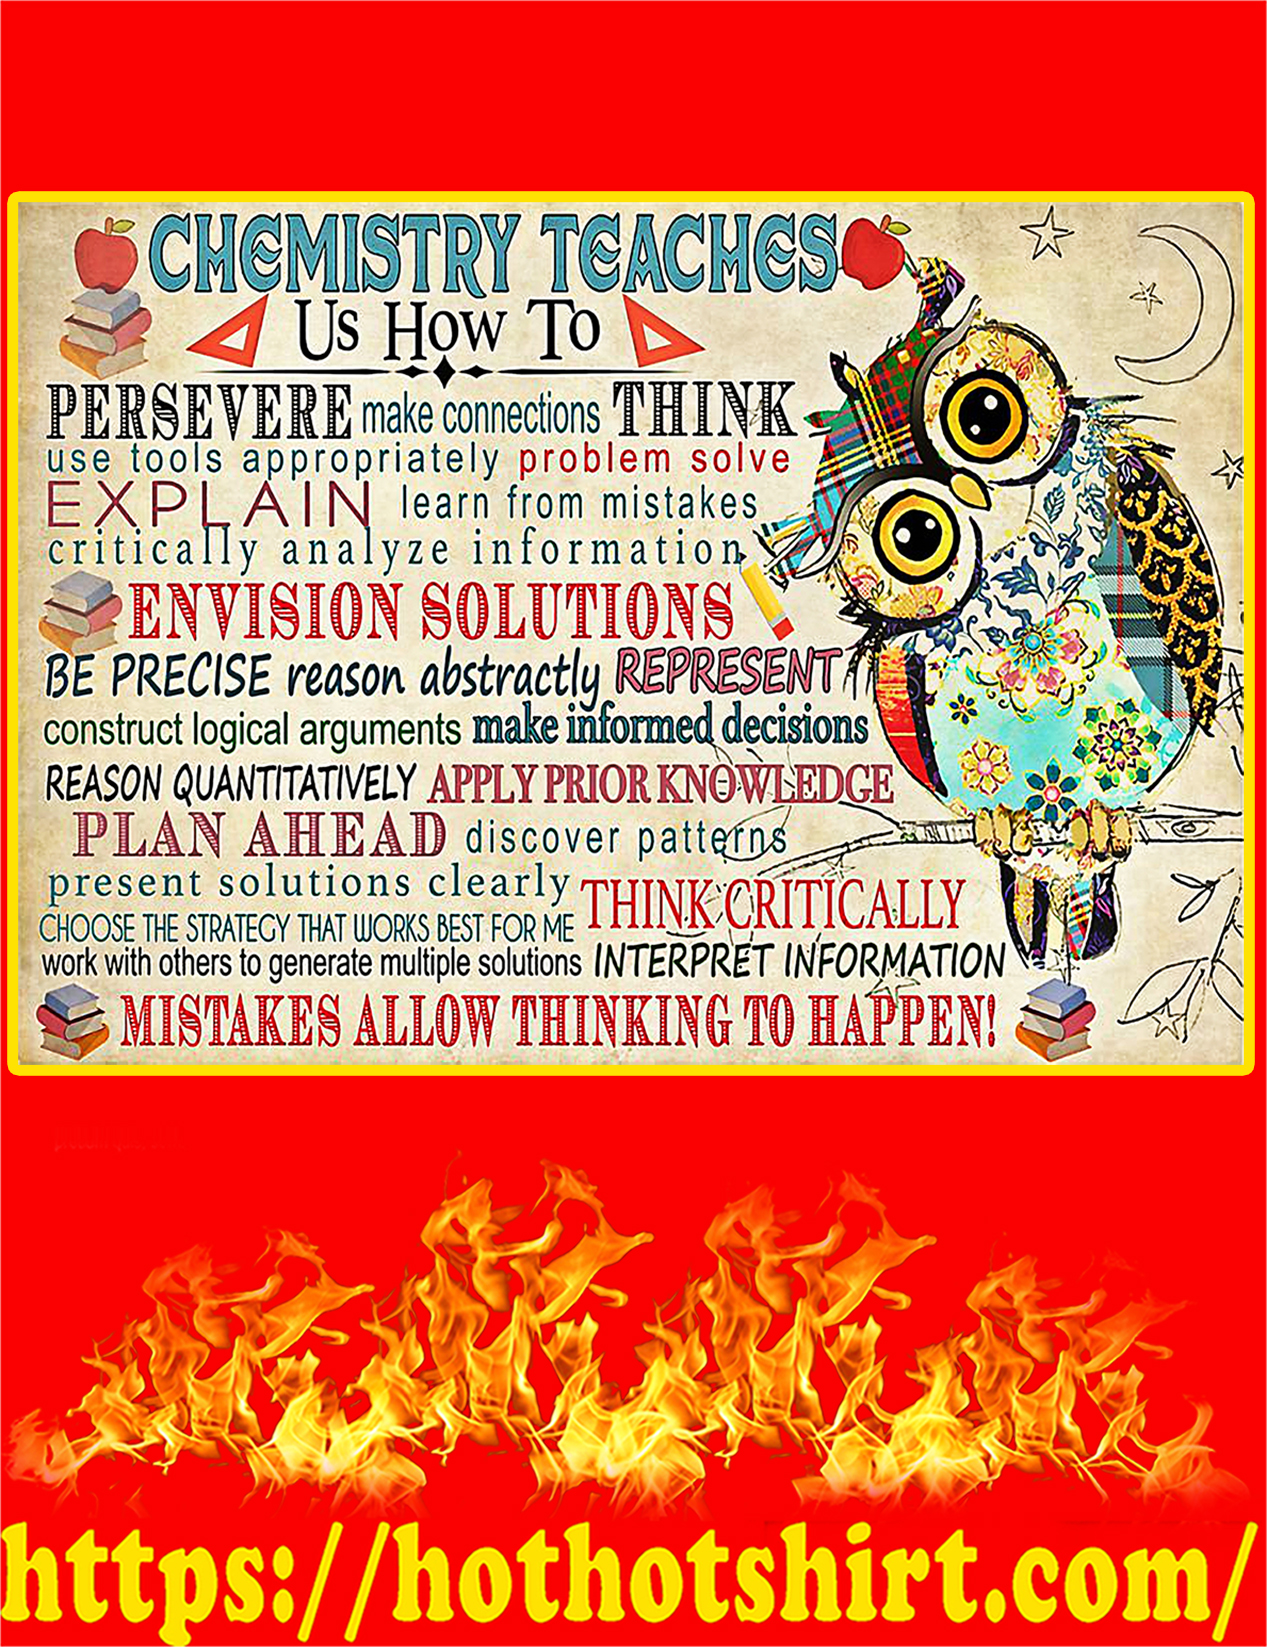 Chemistry Teaches Poster - A4